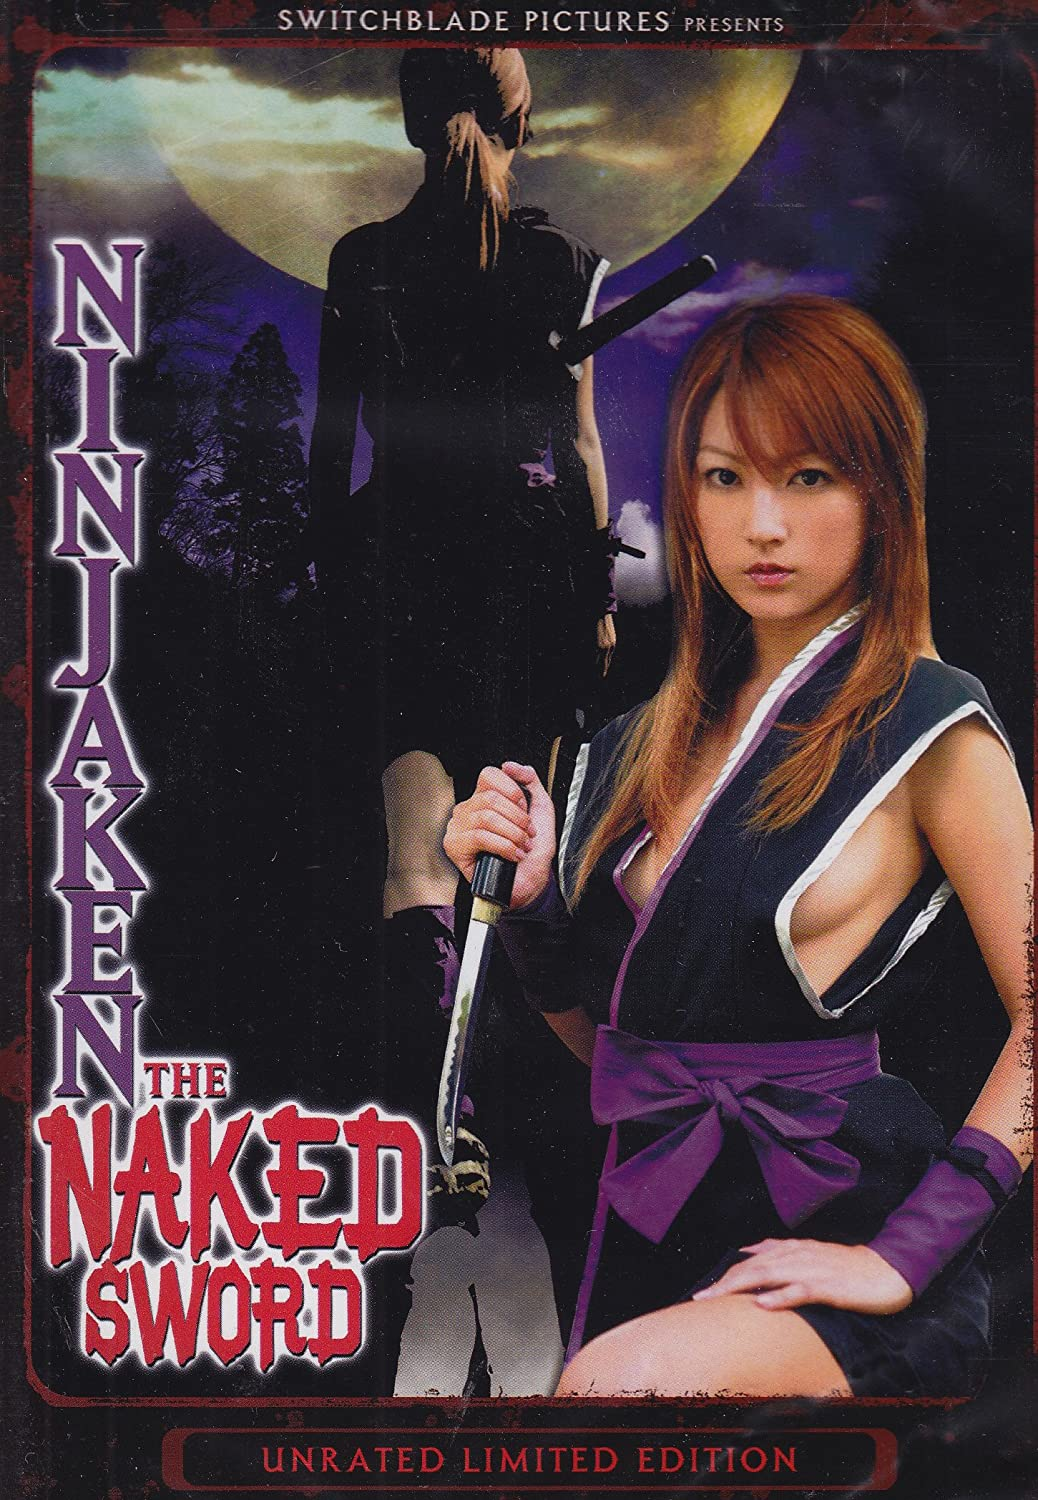 Naked Sword [Reino Unido] [DVD]: Amazon.es: Cine y Series TV